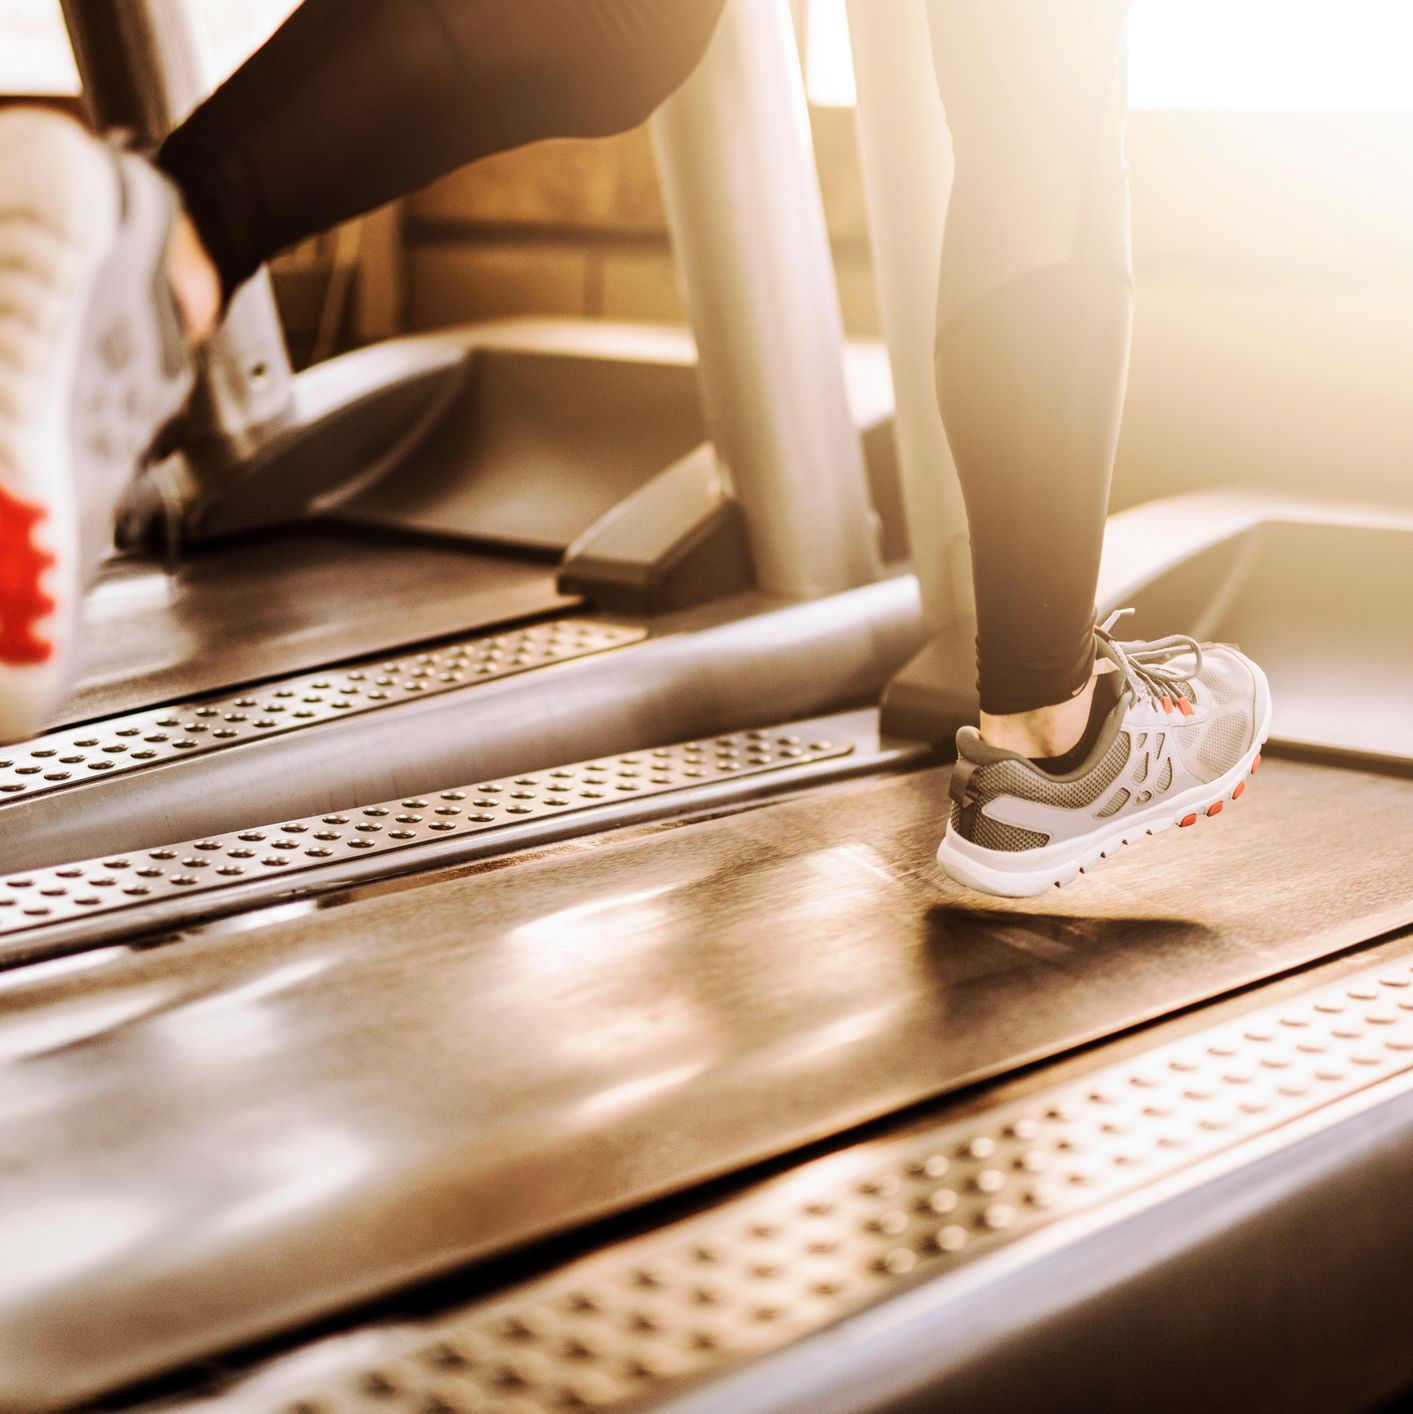 Is Running on a Treadmill Harder or Easier Than Running Outside?